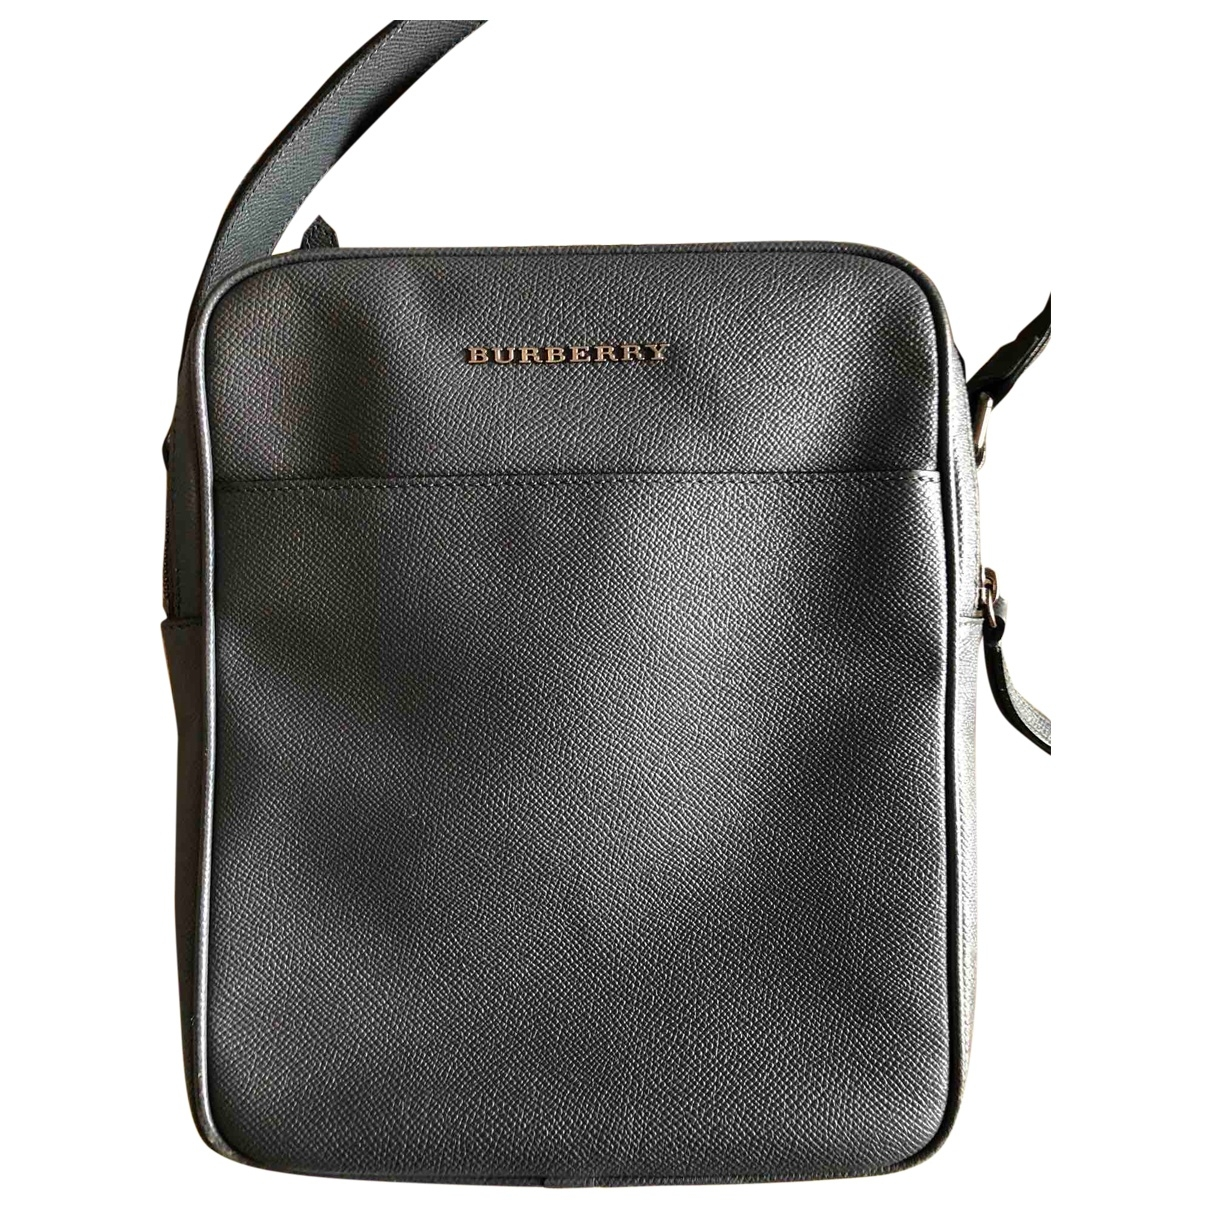 Burberry \N Anthracite Leather bag for Men \N